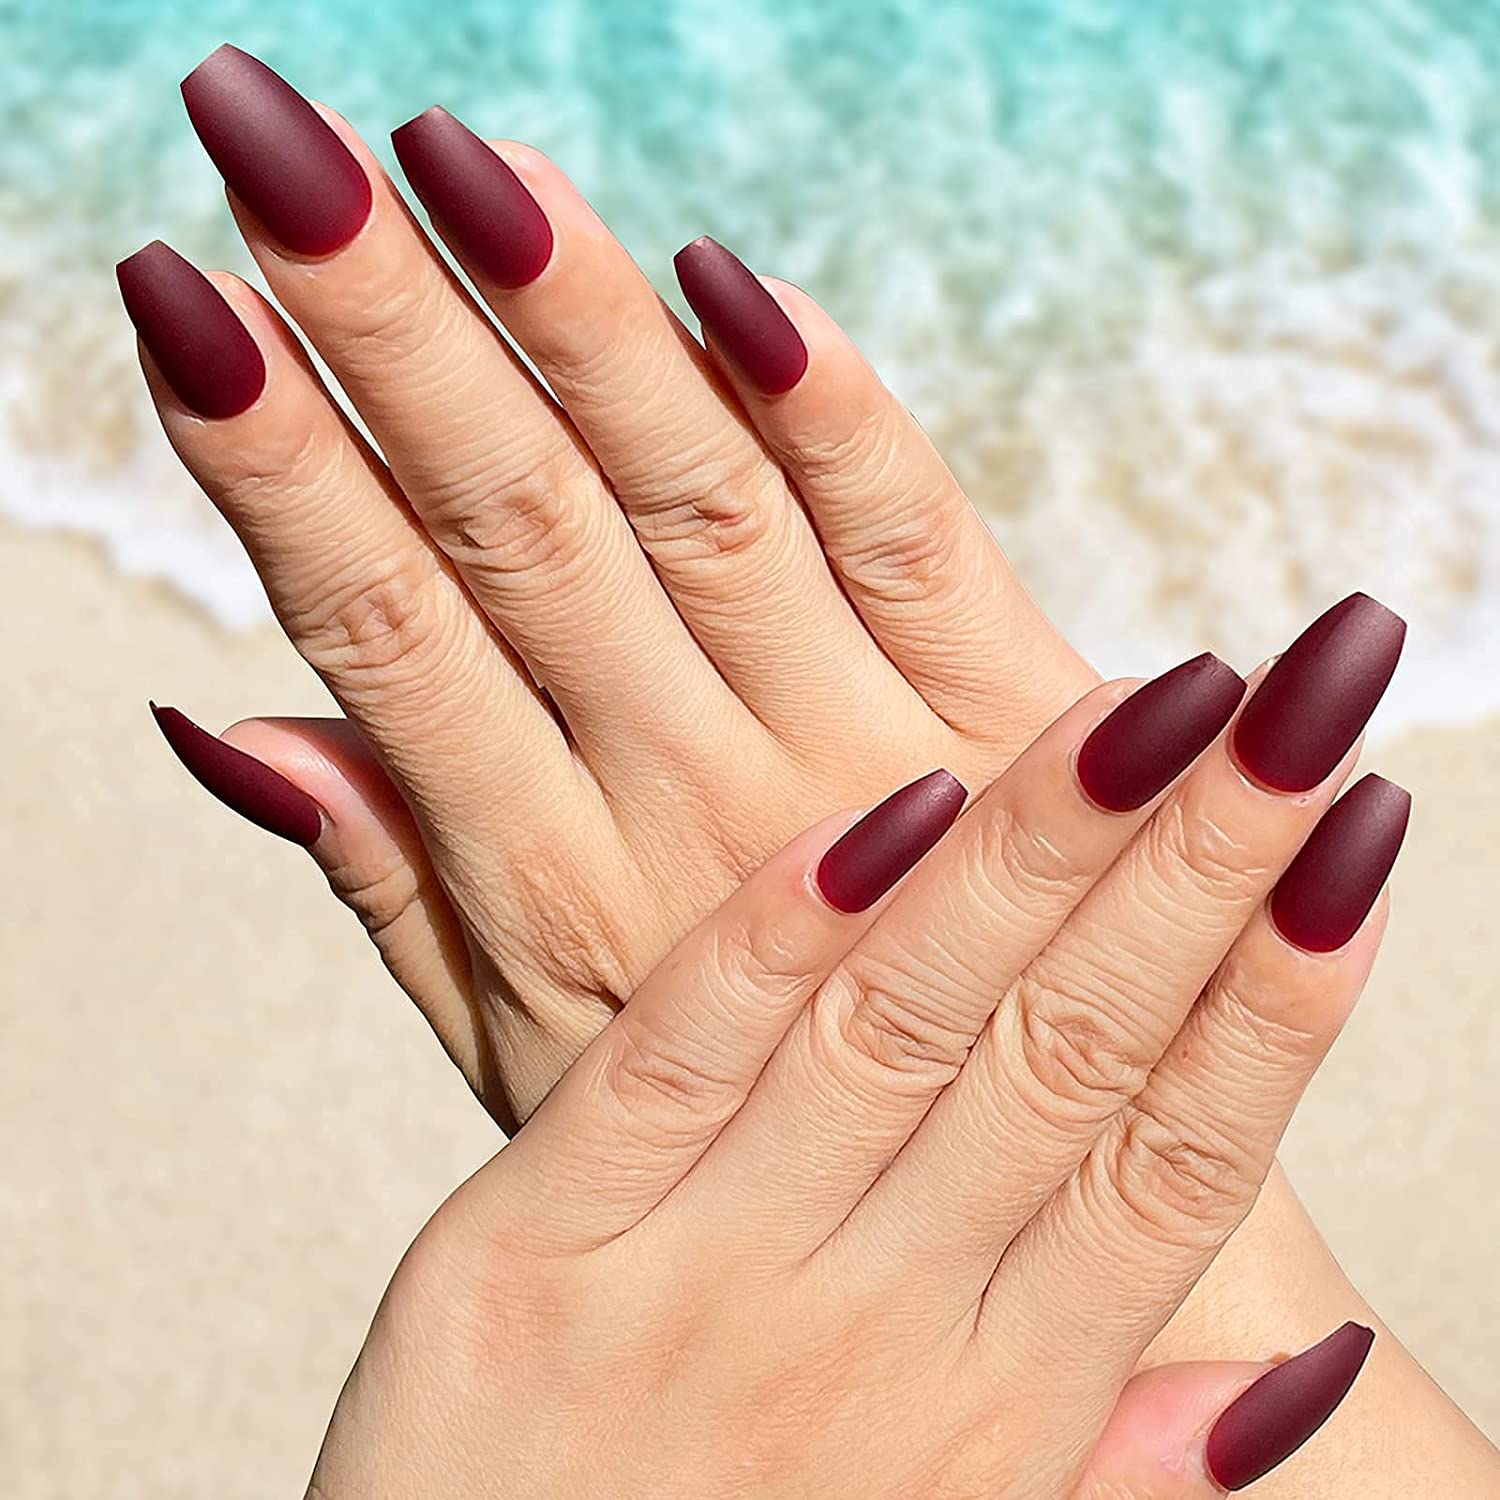 40% OFF Cheap Sale Press New York Mall on Nails Short N Stick Fake Static